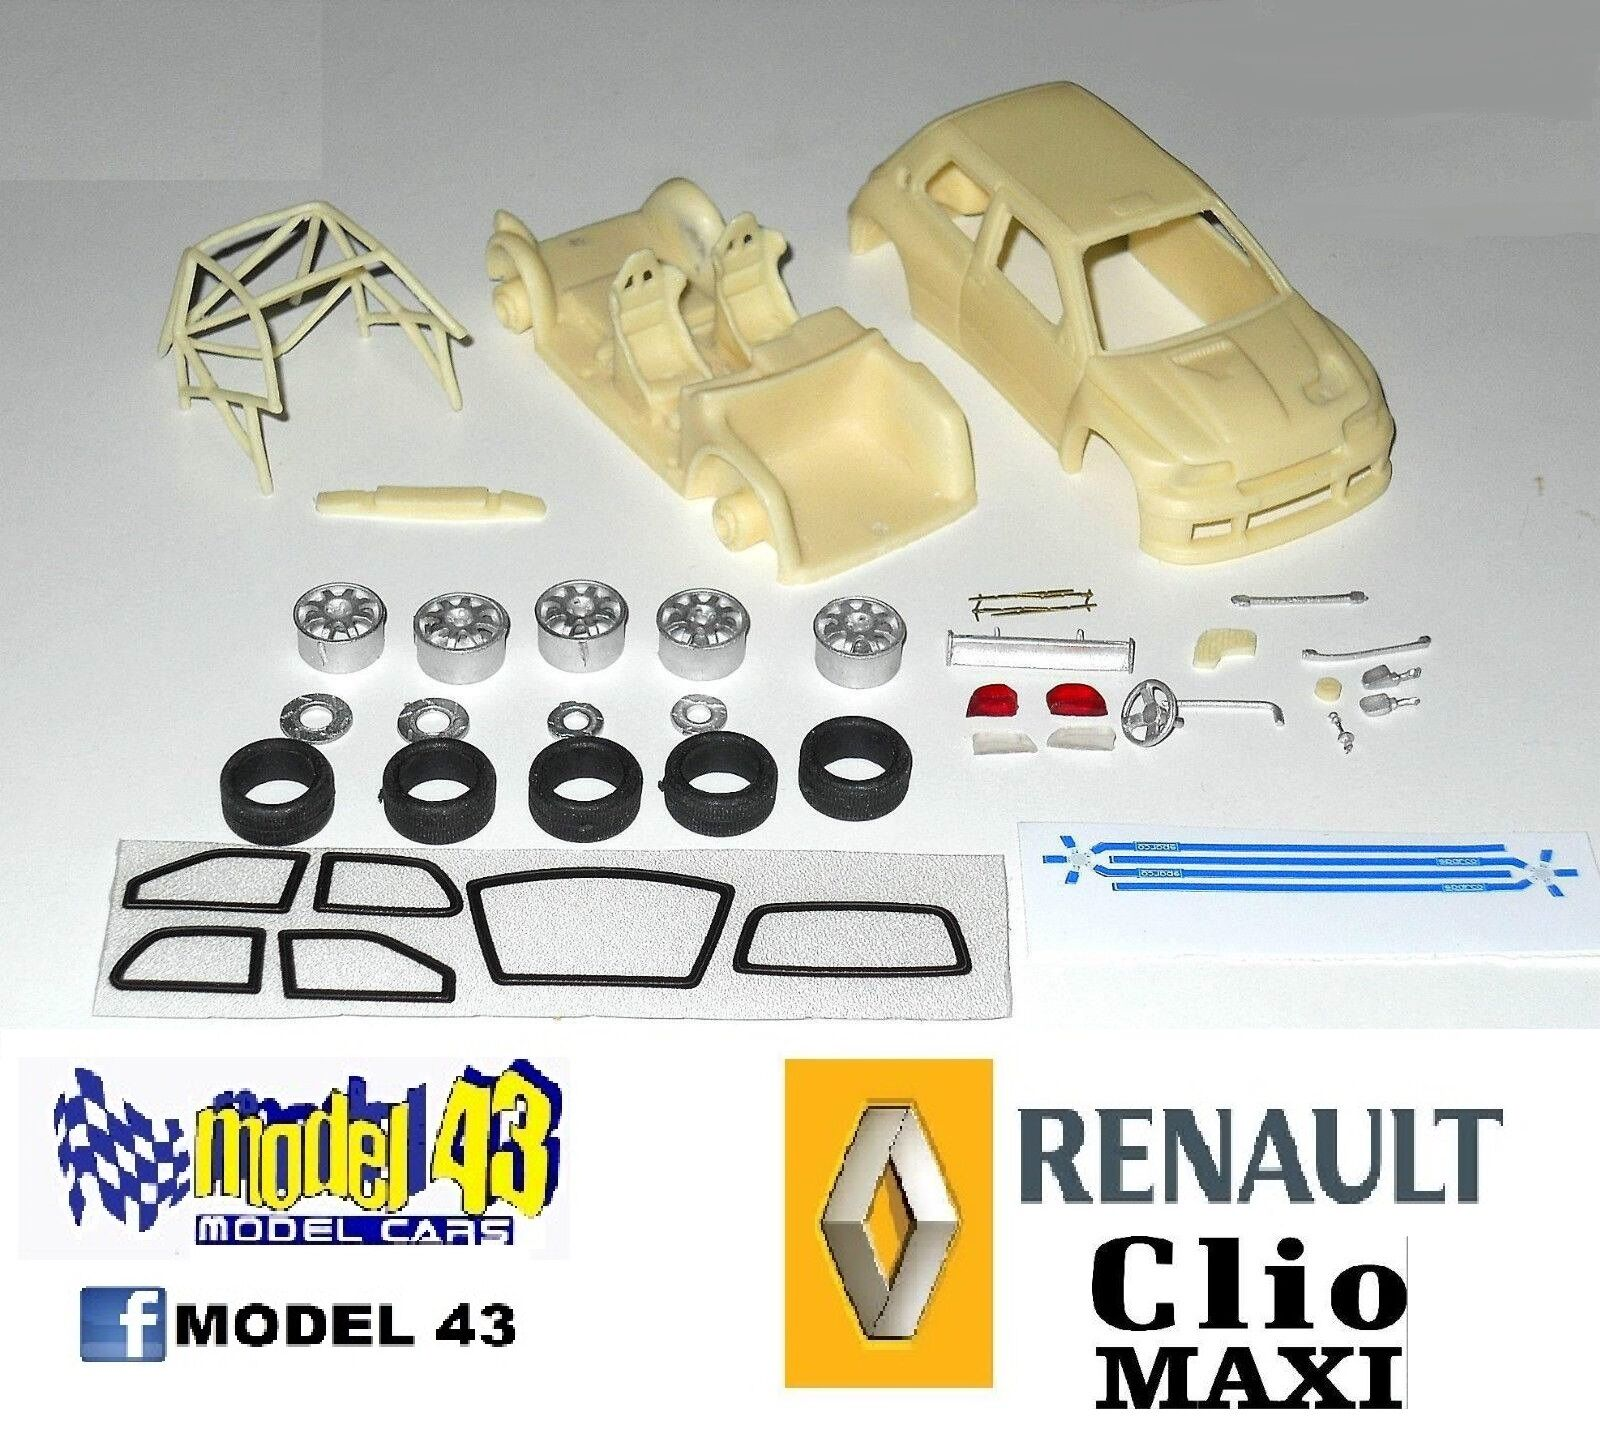 Renault Clio Maxi - ASSEMBLY KIT